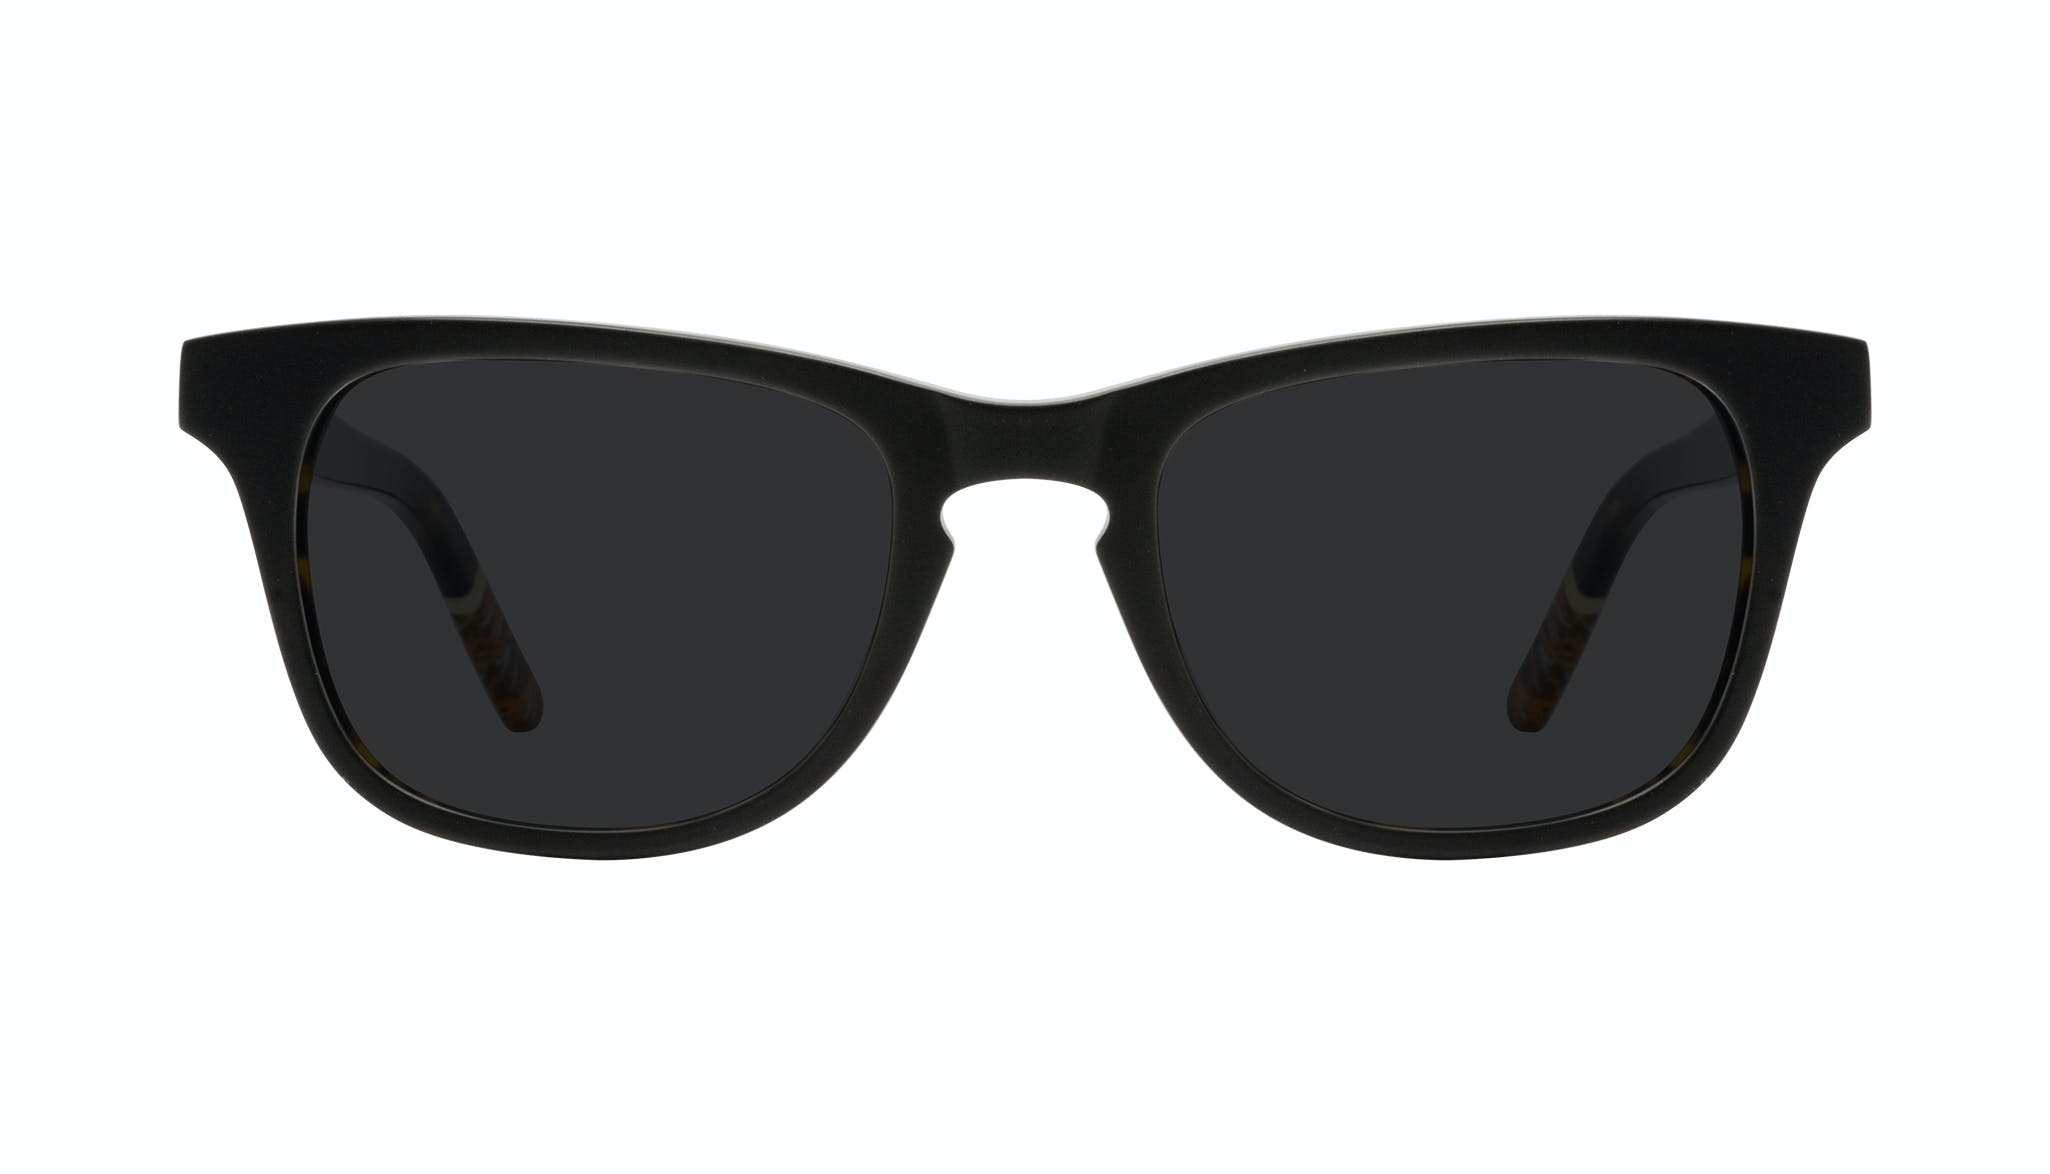 Affordable Fashion Glasses Rectangle Sunglasses Men Trust Black Tort